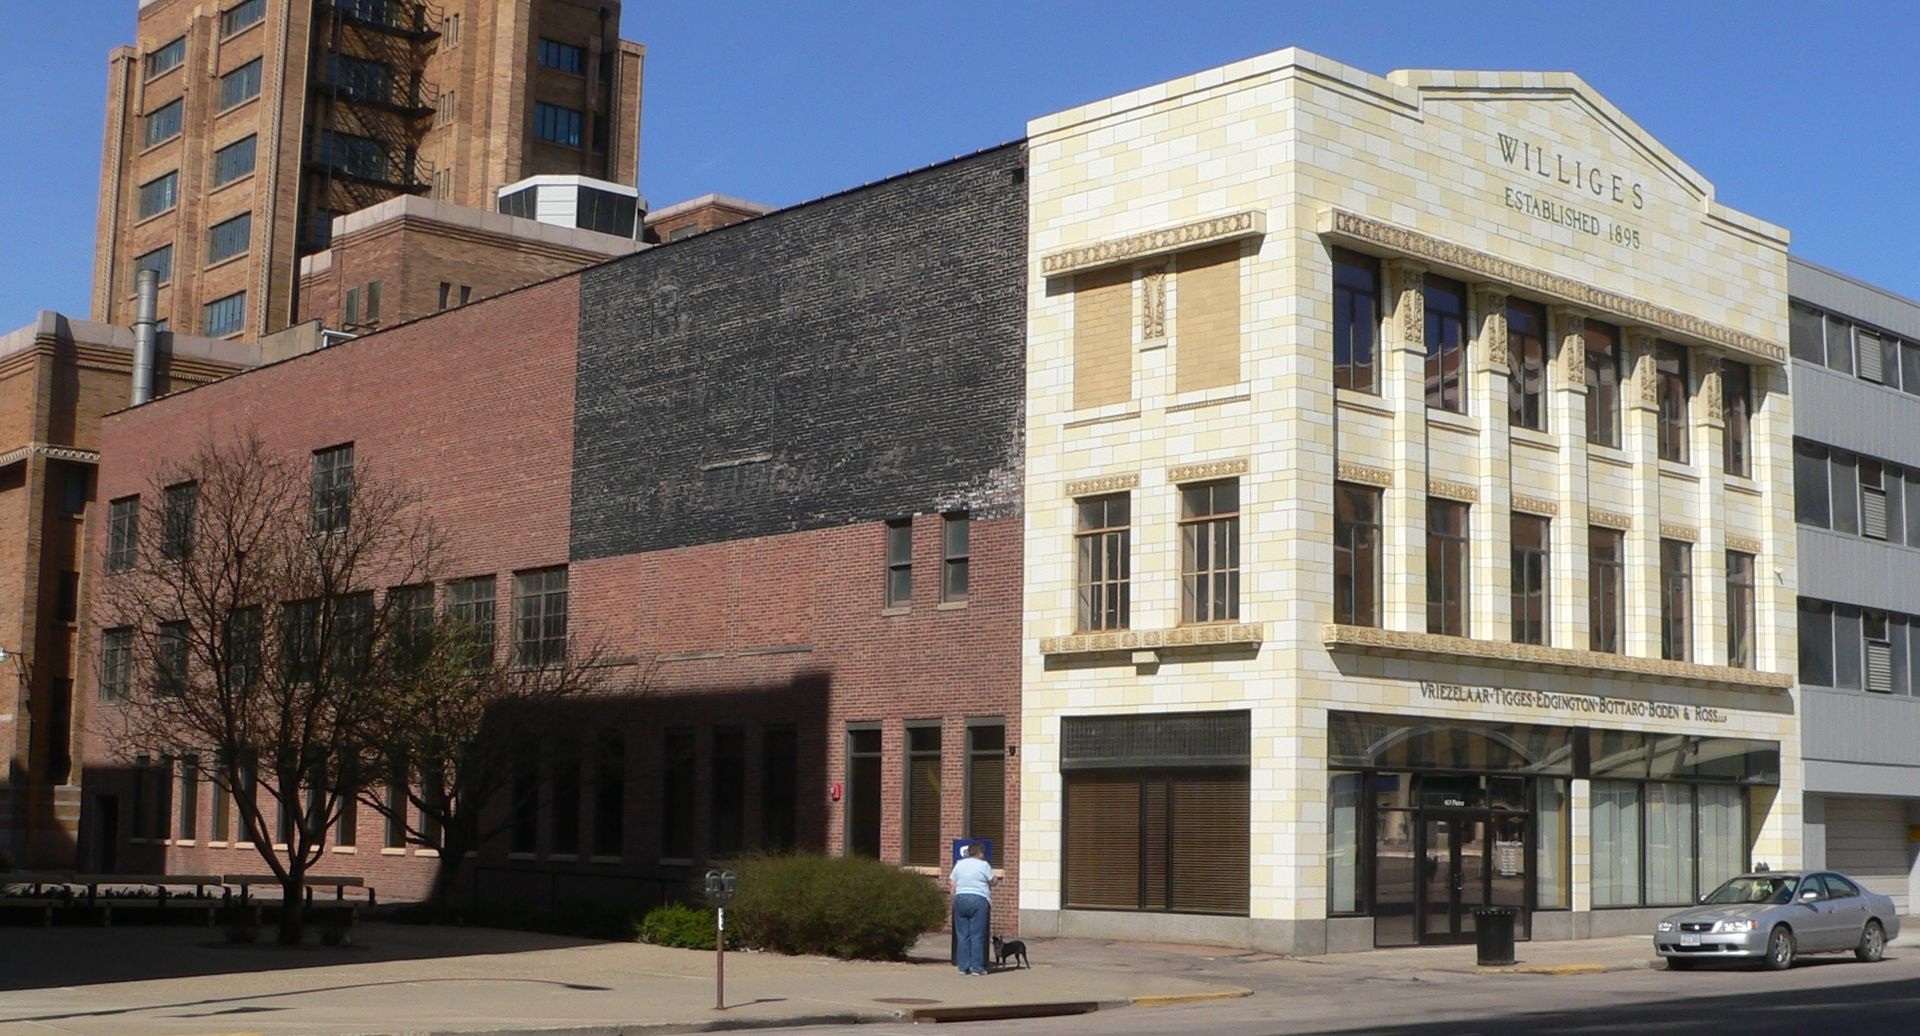 2012 Photo of the Williges Building in Sioux City -- Side View